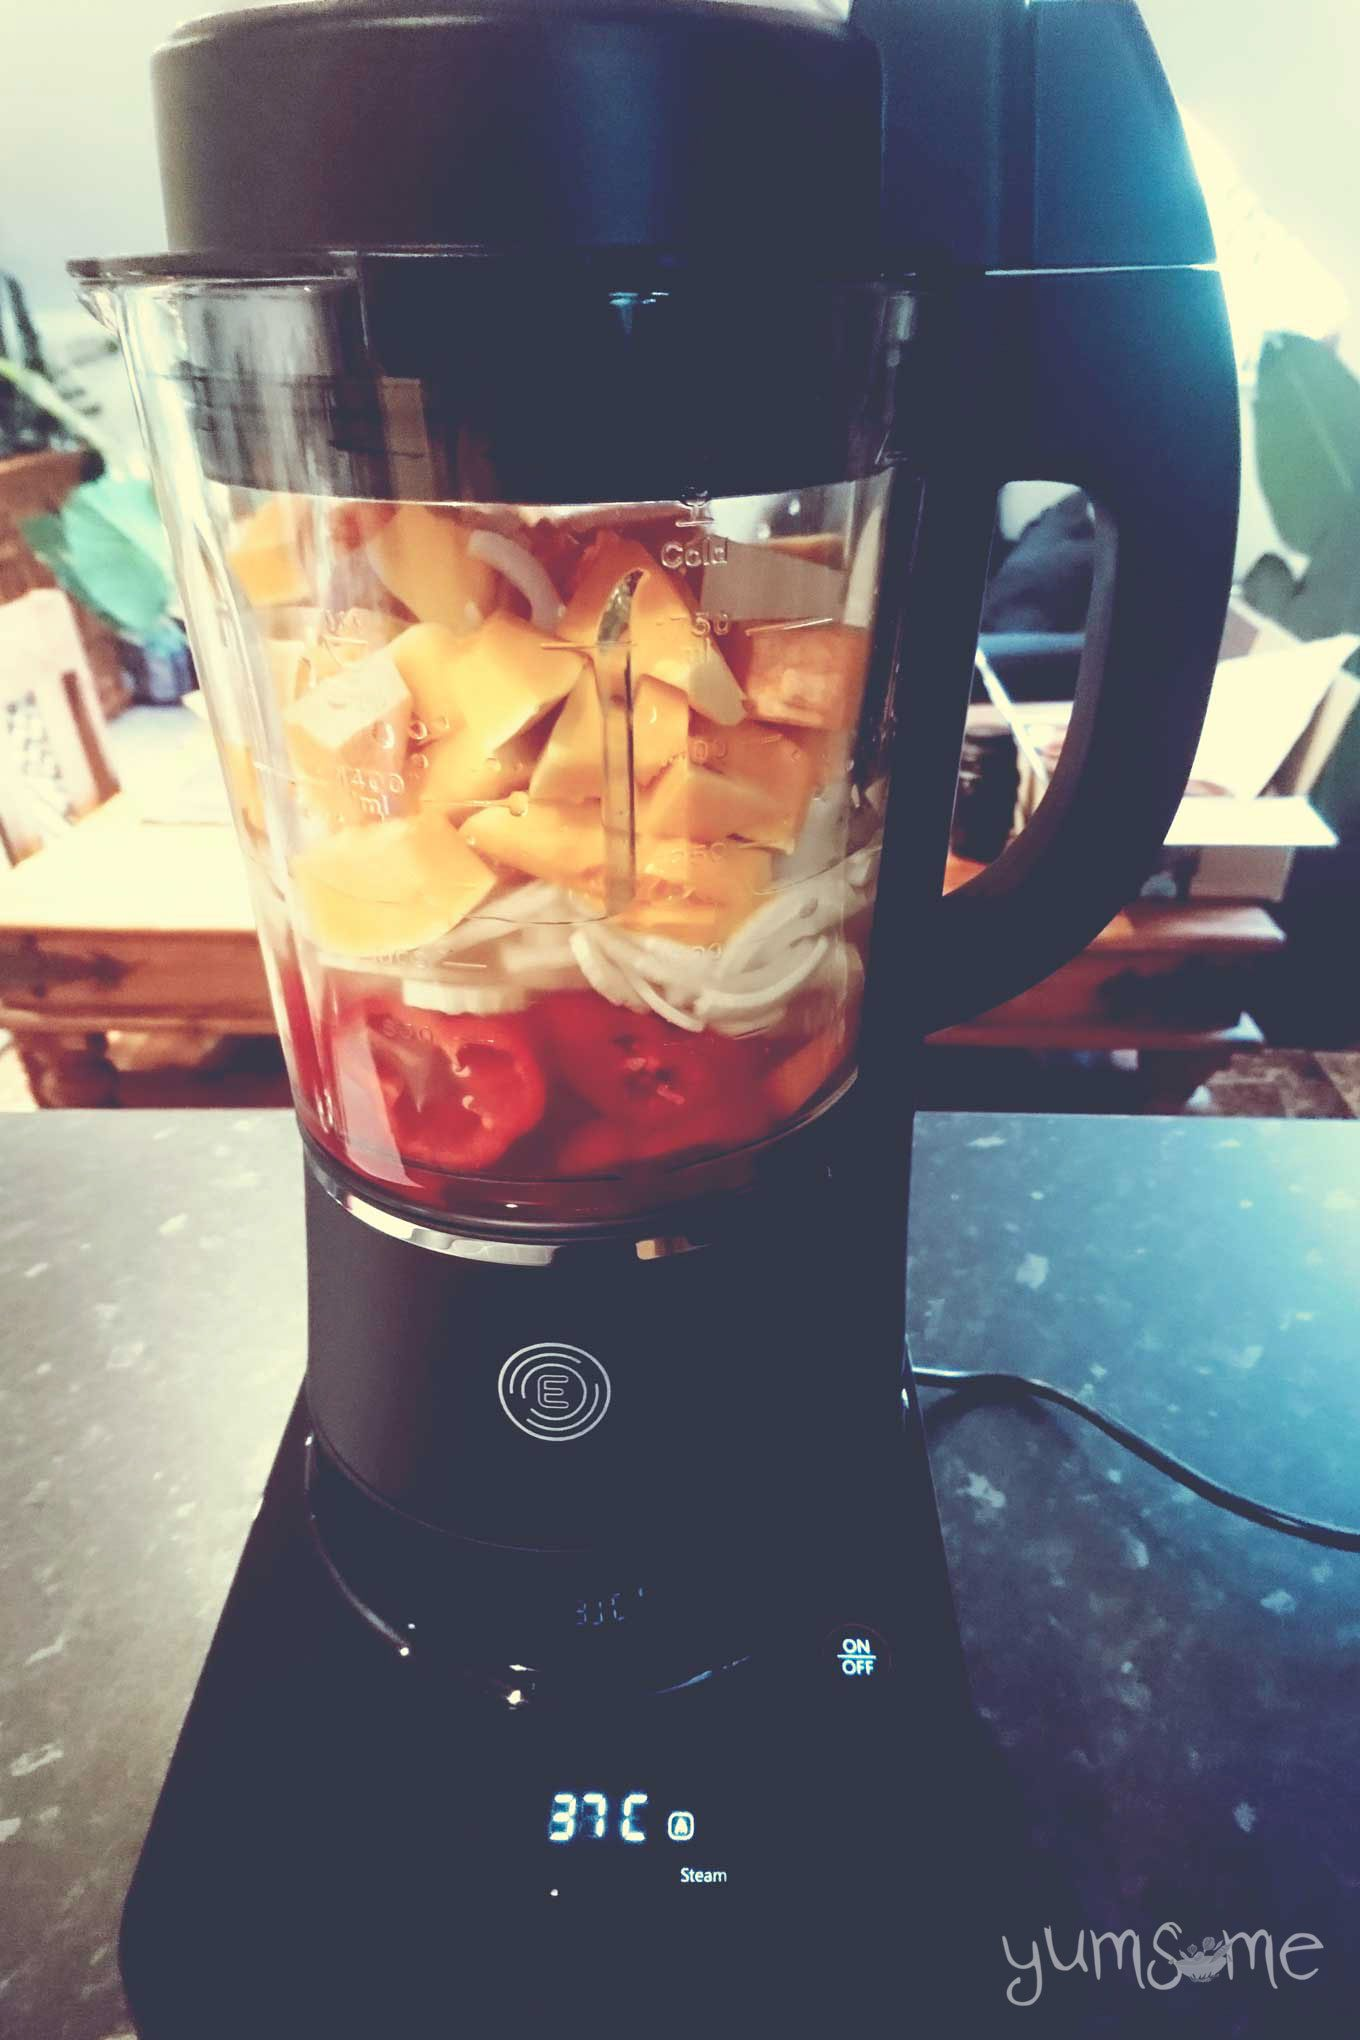 Chopped vegetables in the Froothie Evolve blender jug.